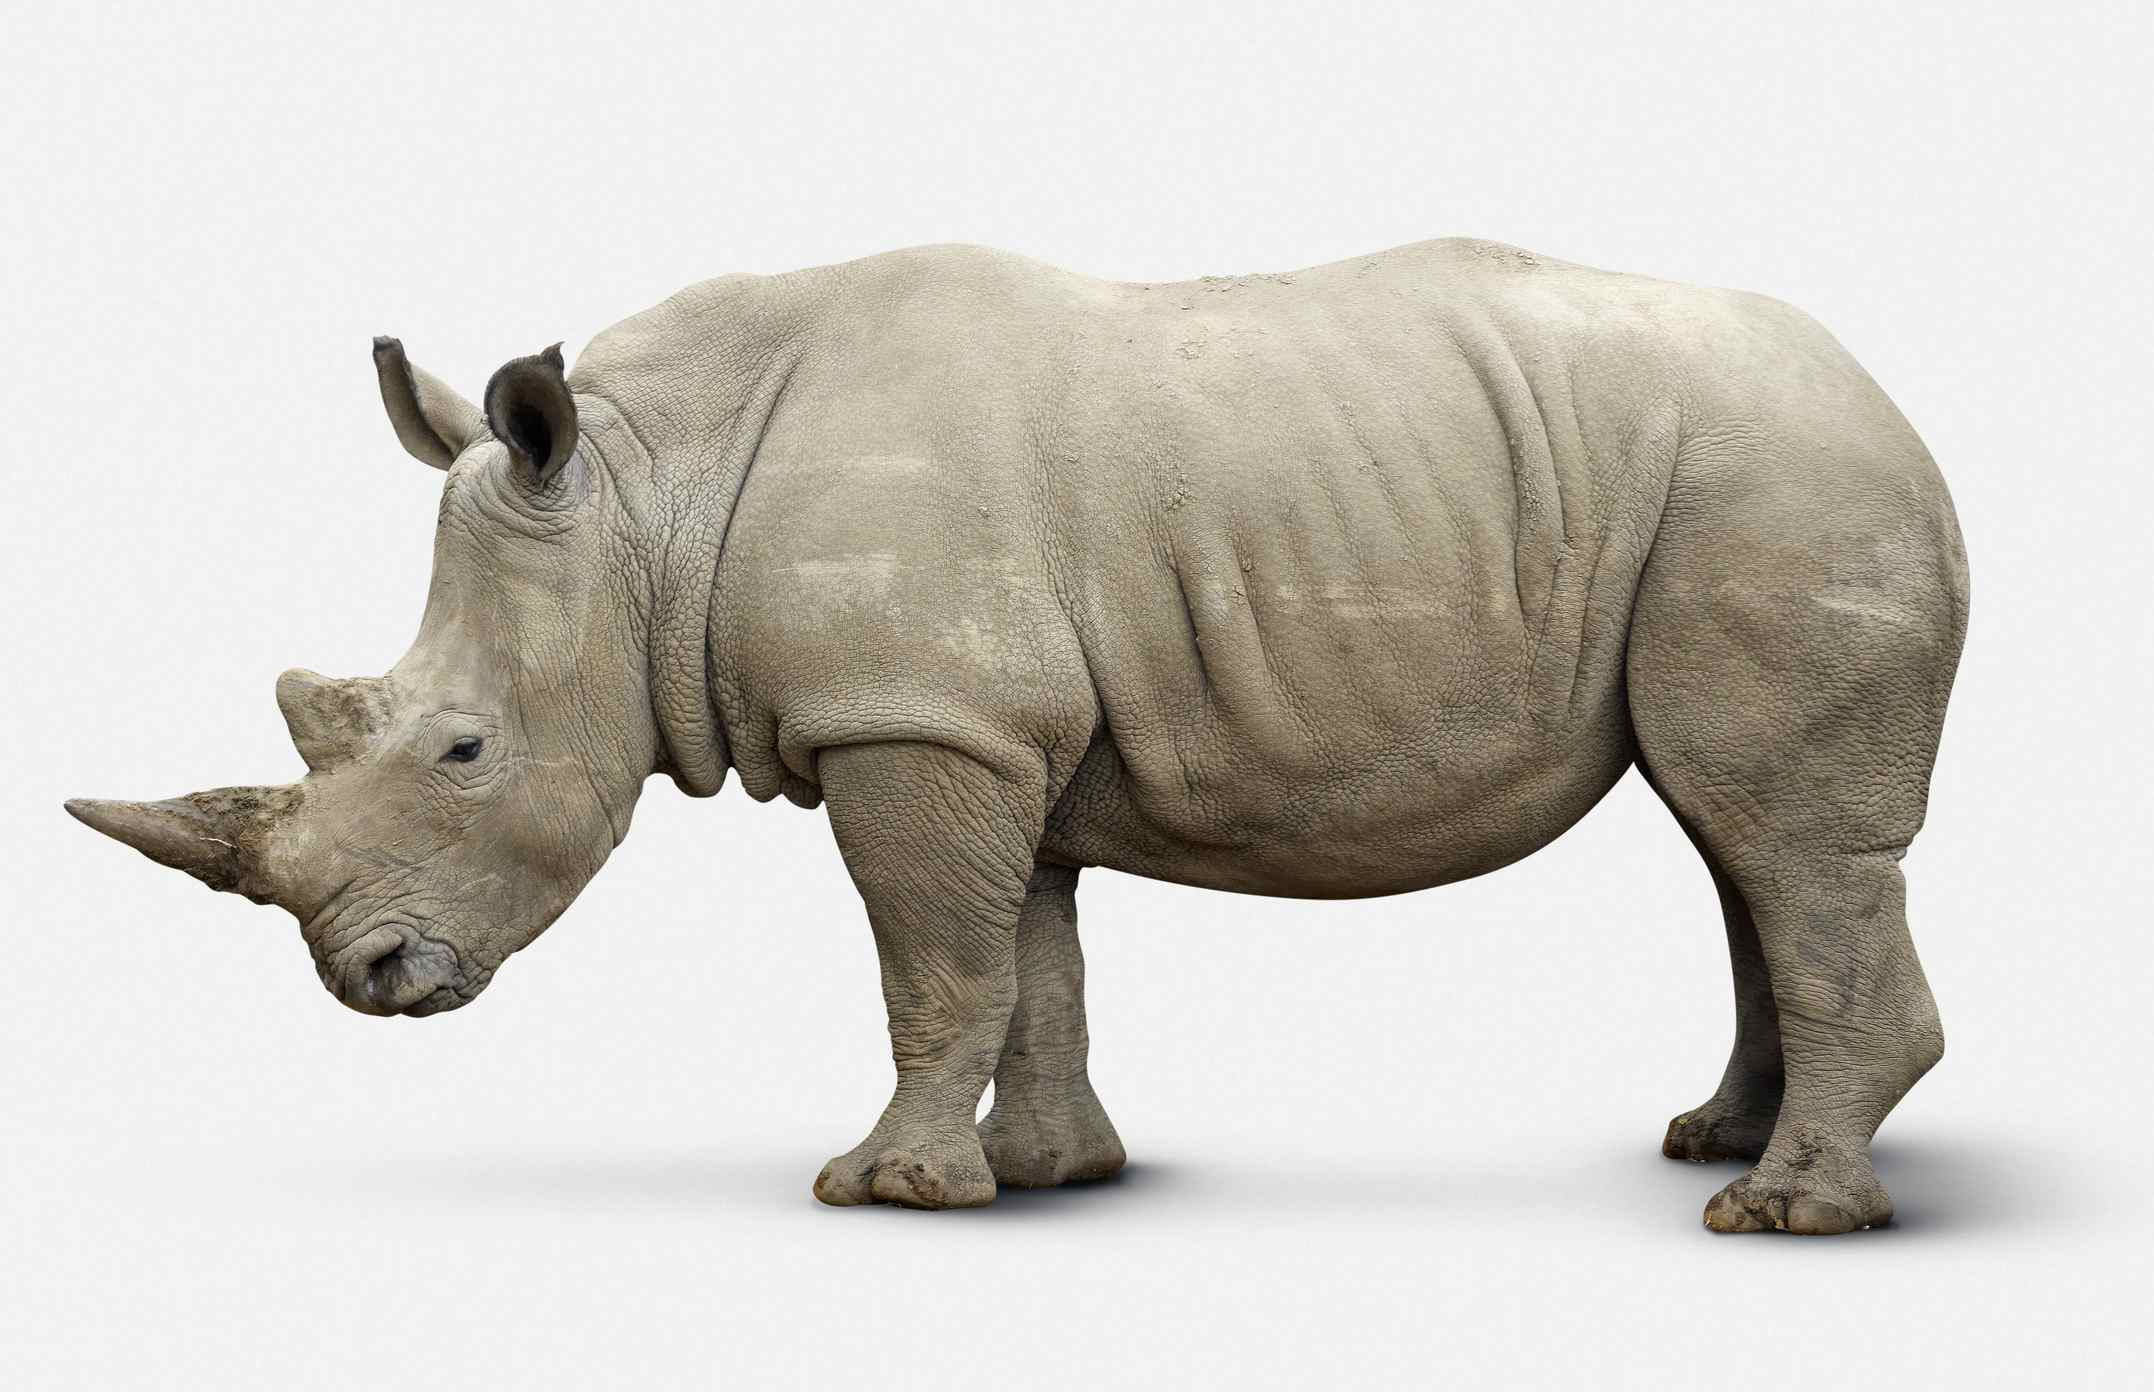 10 Facts About Rhinoceroses